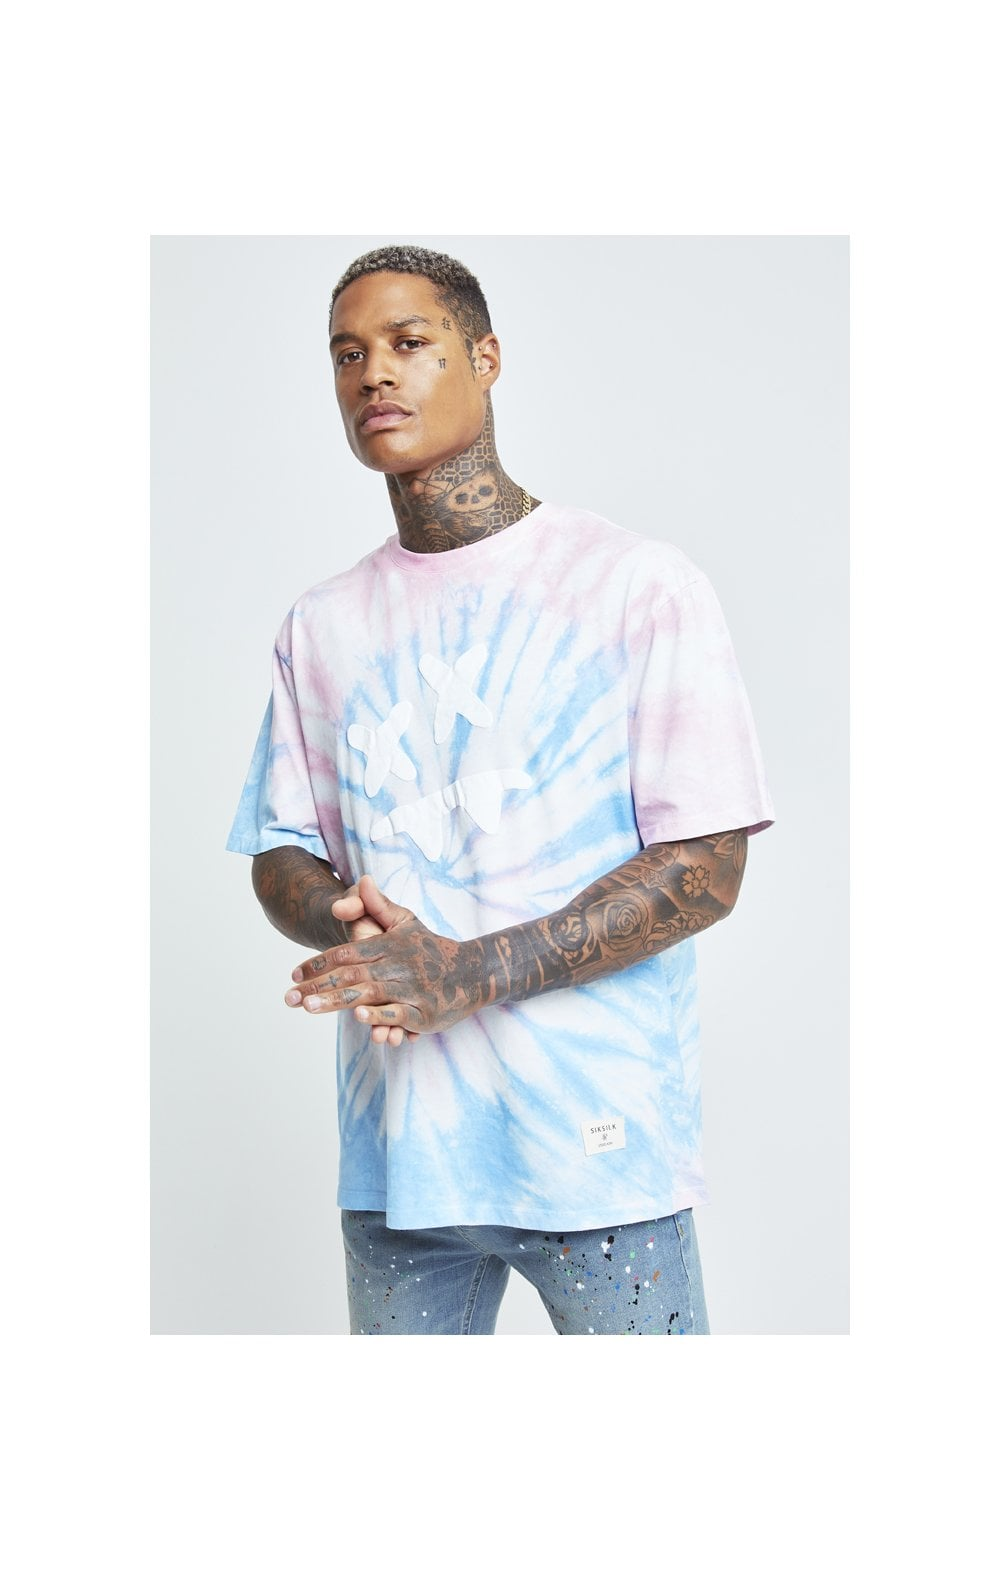 Load image into Gallery viewer, SikSilk X Steve Aoki S/S Oversize Essential Tee – Baby Pink & Blue Tie Dye (1)